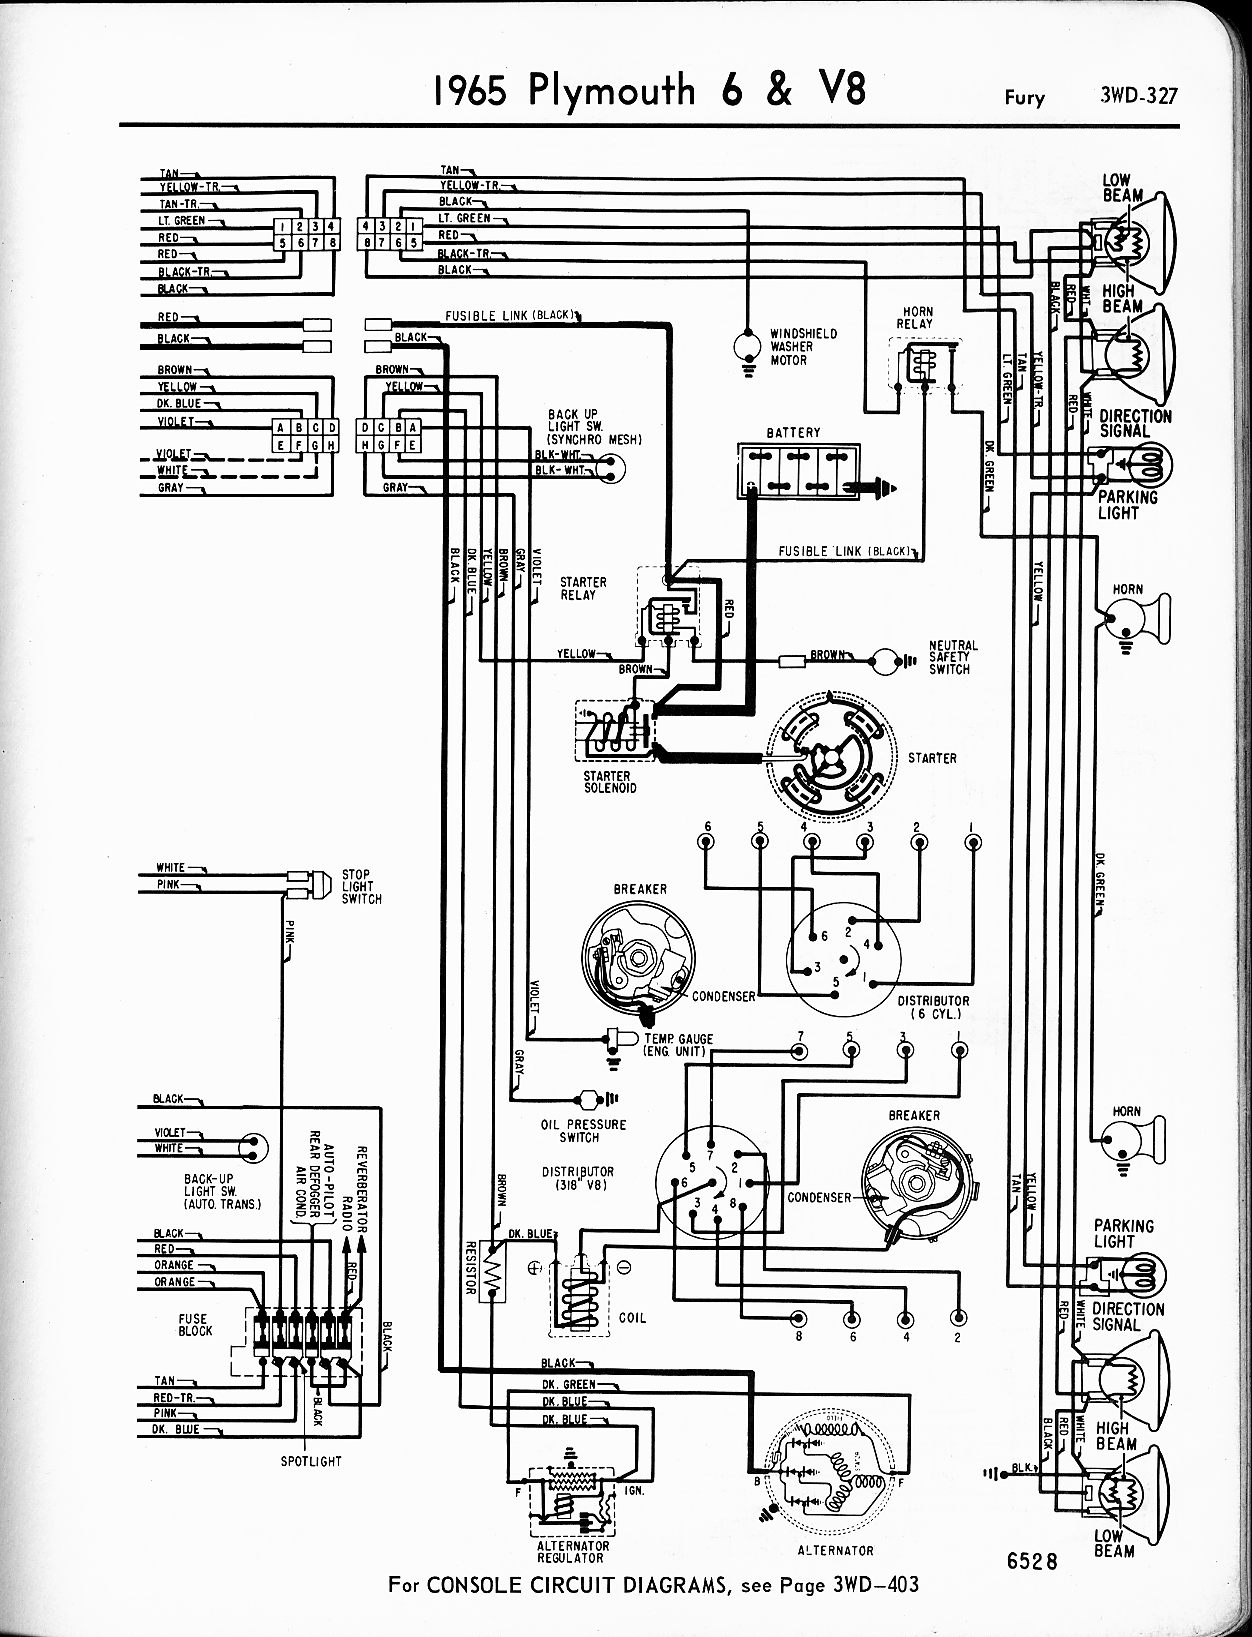 Car Engine Wiring Diagrams Free Great Installation Of Diagram Drag Racing 1965 Plymouth Valiant Library Rh 36 Codingcommunity De Nhra